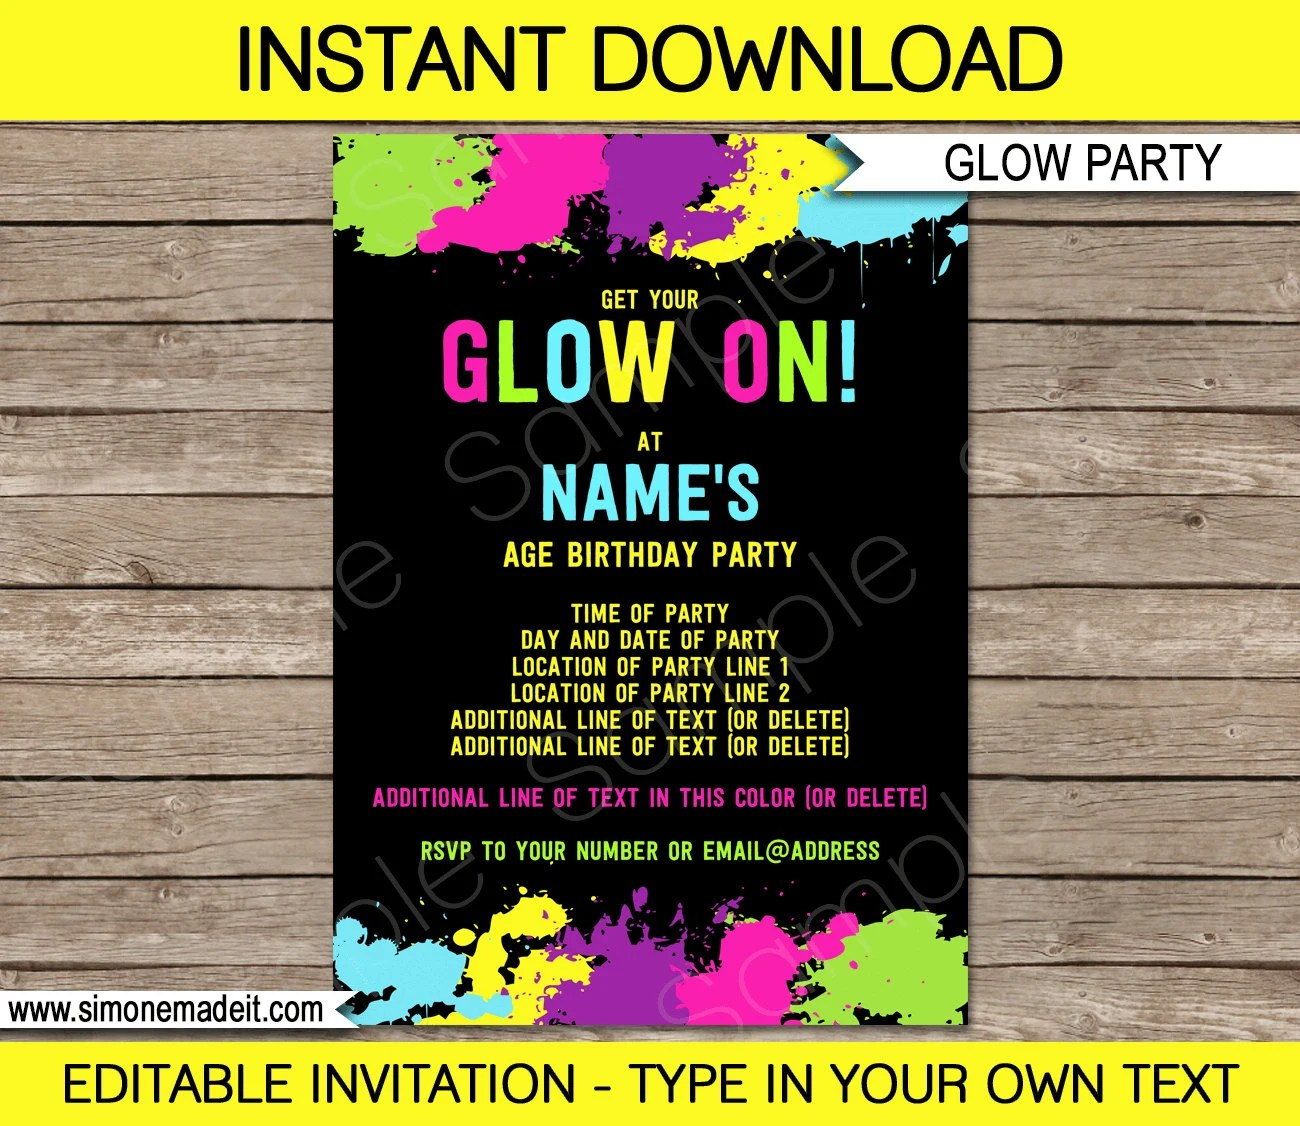 Glow Party Invitation Template - Neon Glow Theme Birthday Party